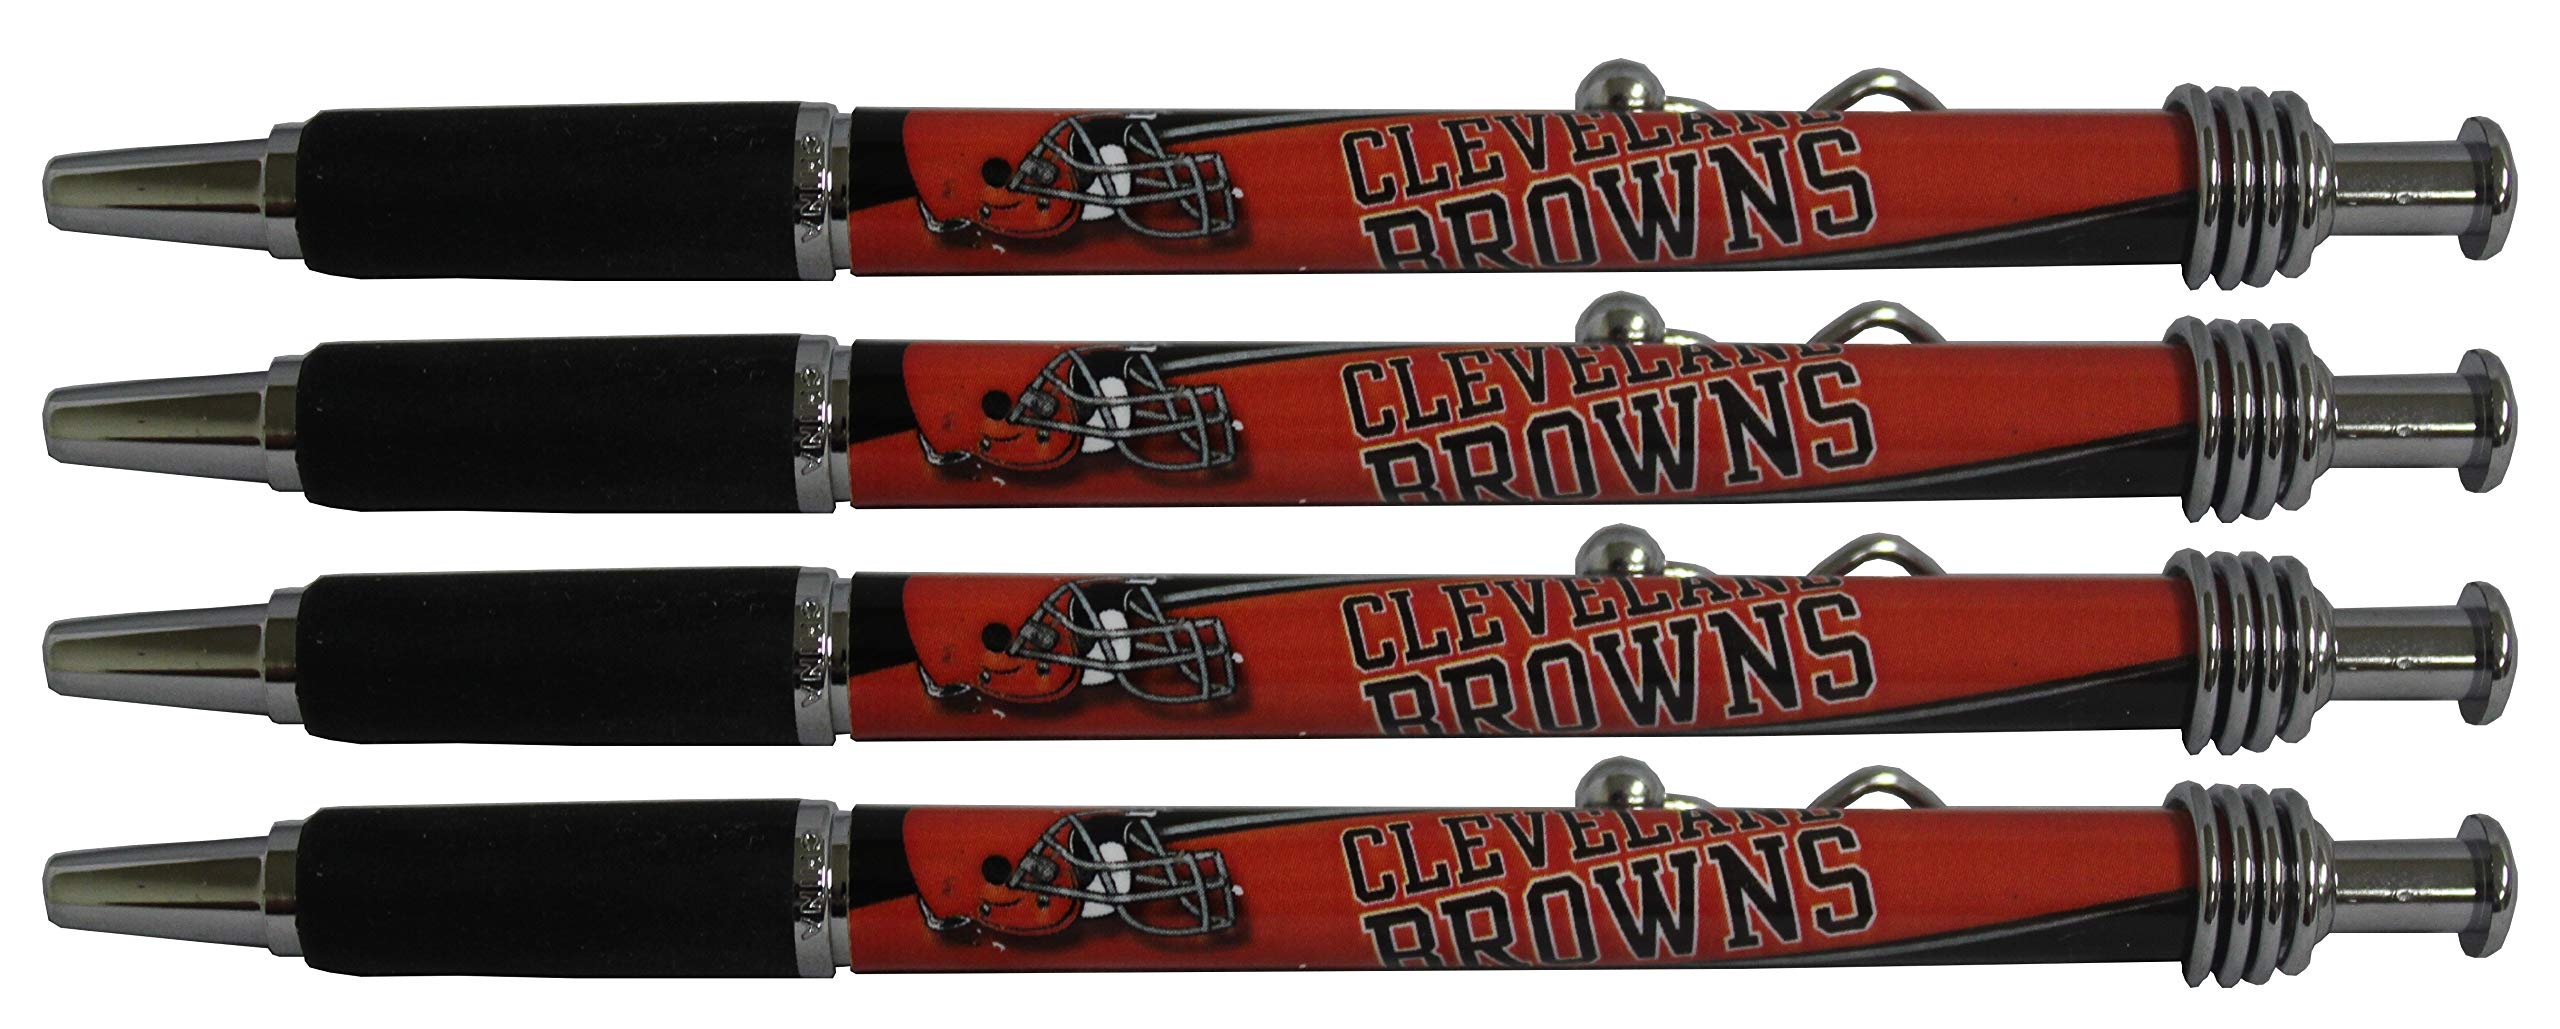 Cleveland Browns Jazzy Pen 4pk